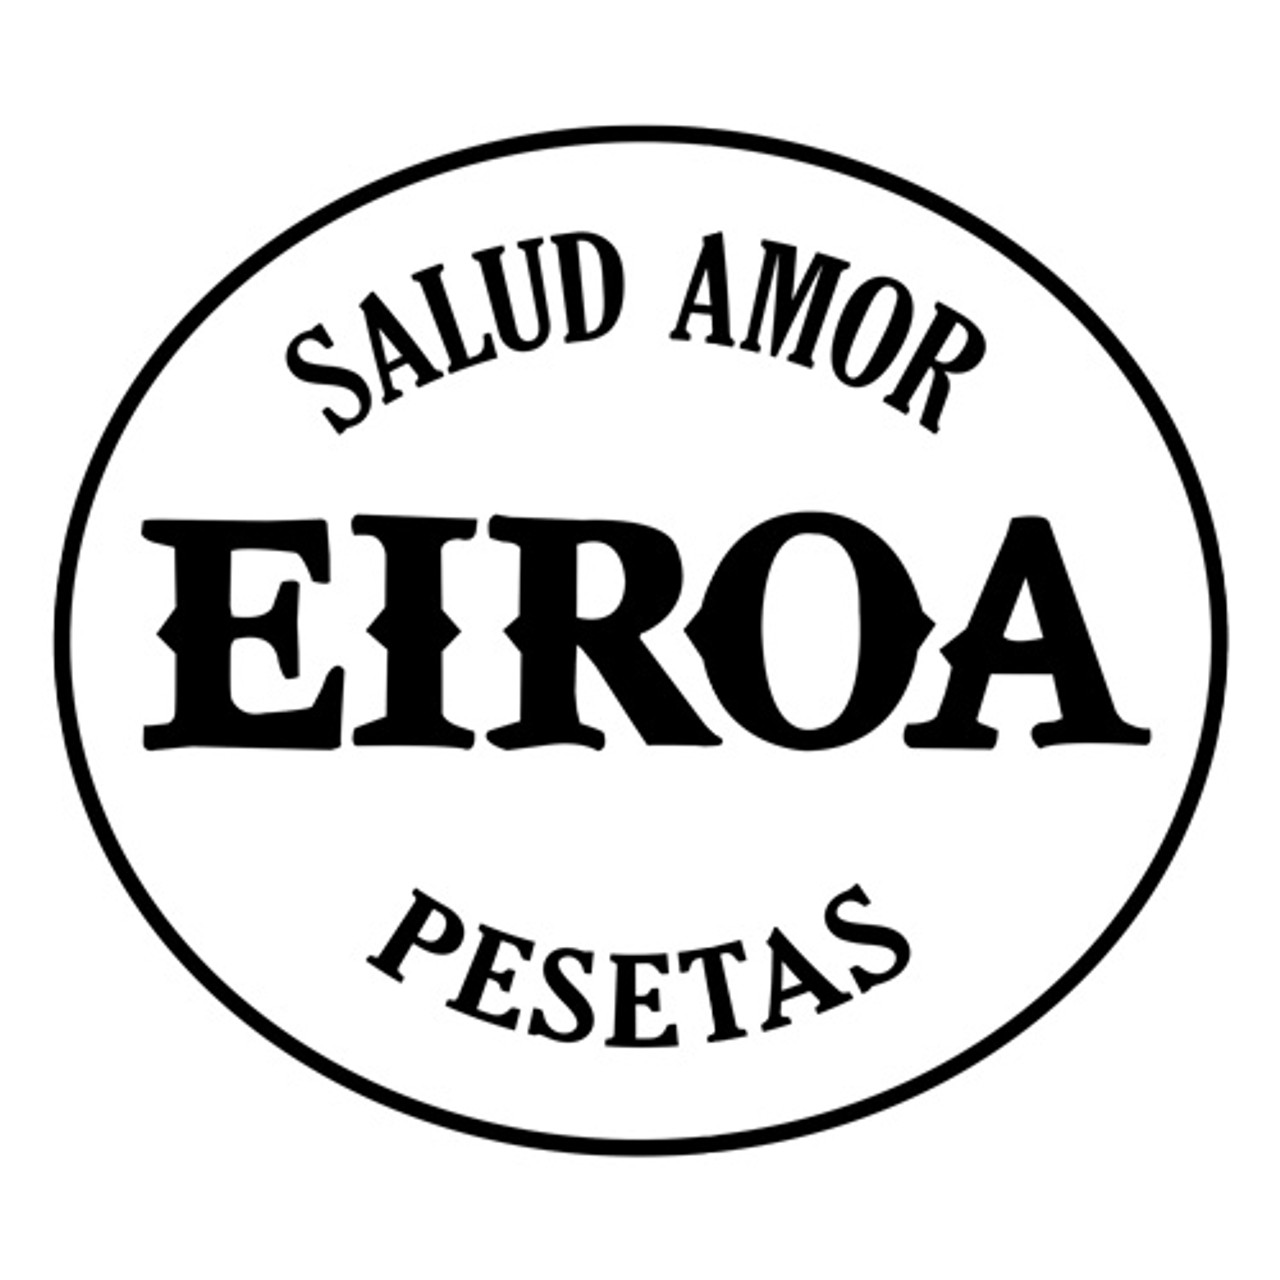 Eiroa The First 20 Years 50 X 5 Cigars - 5 x 50 (Box of 20)